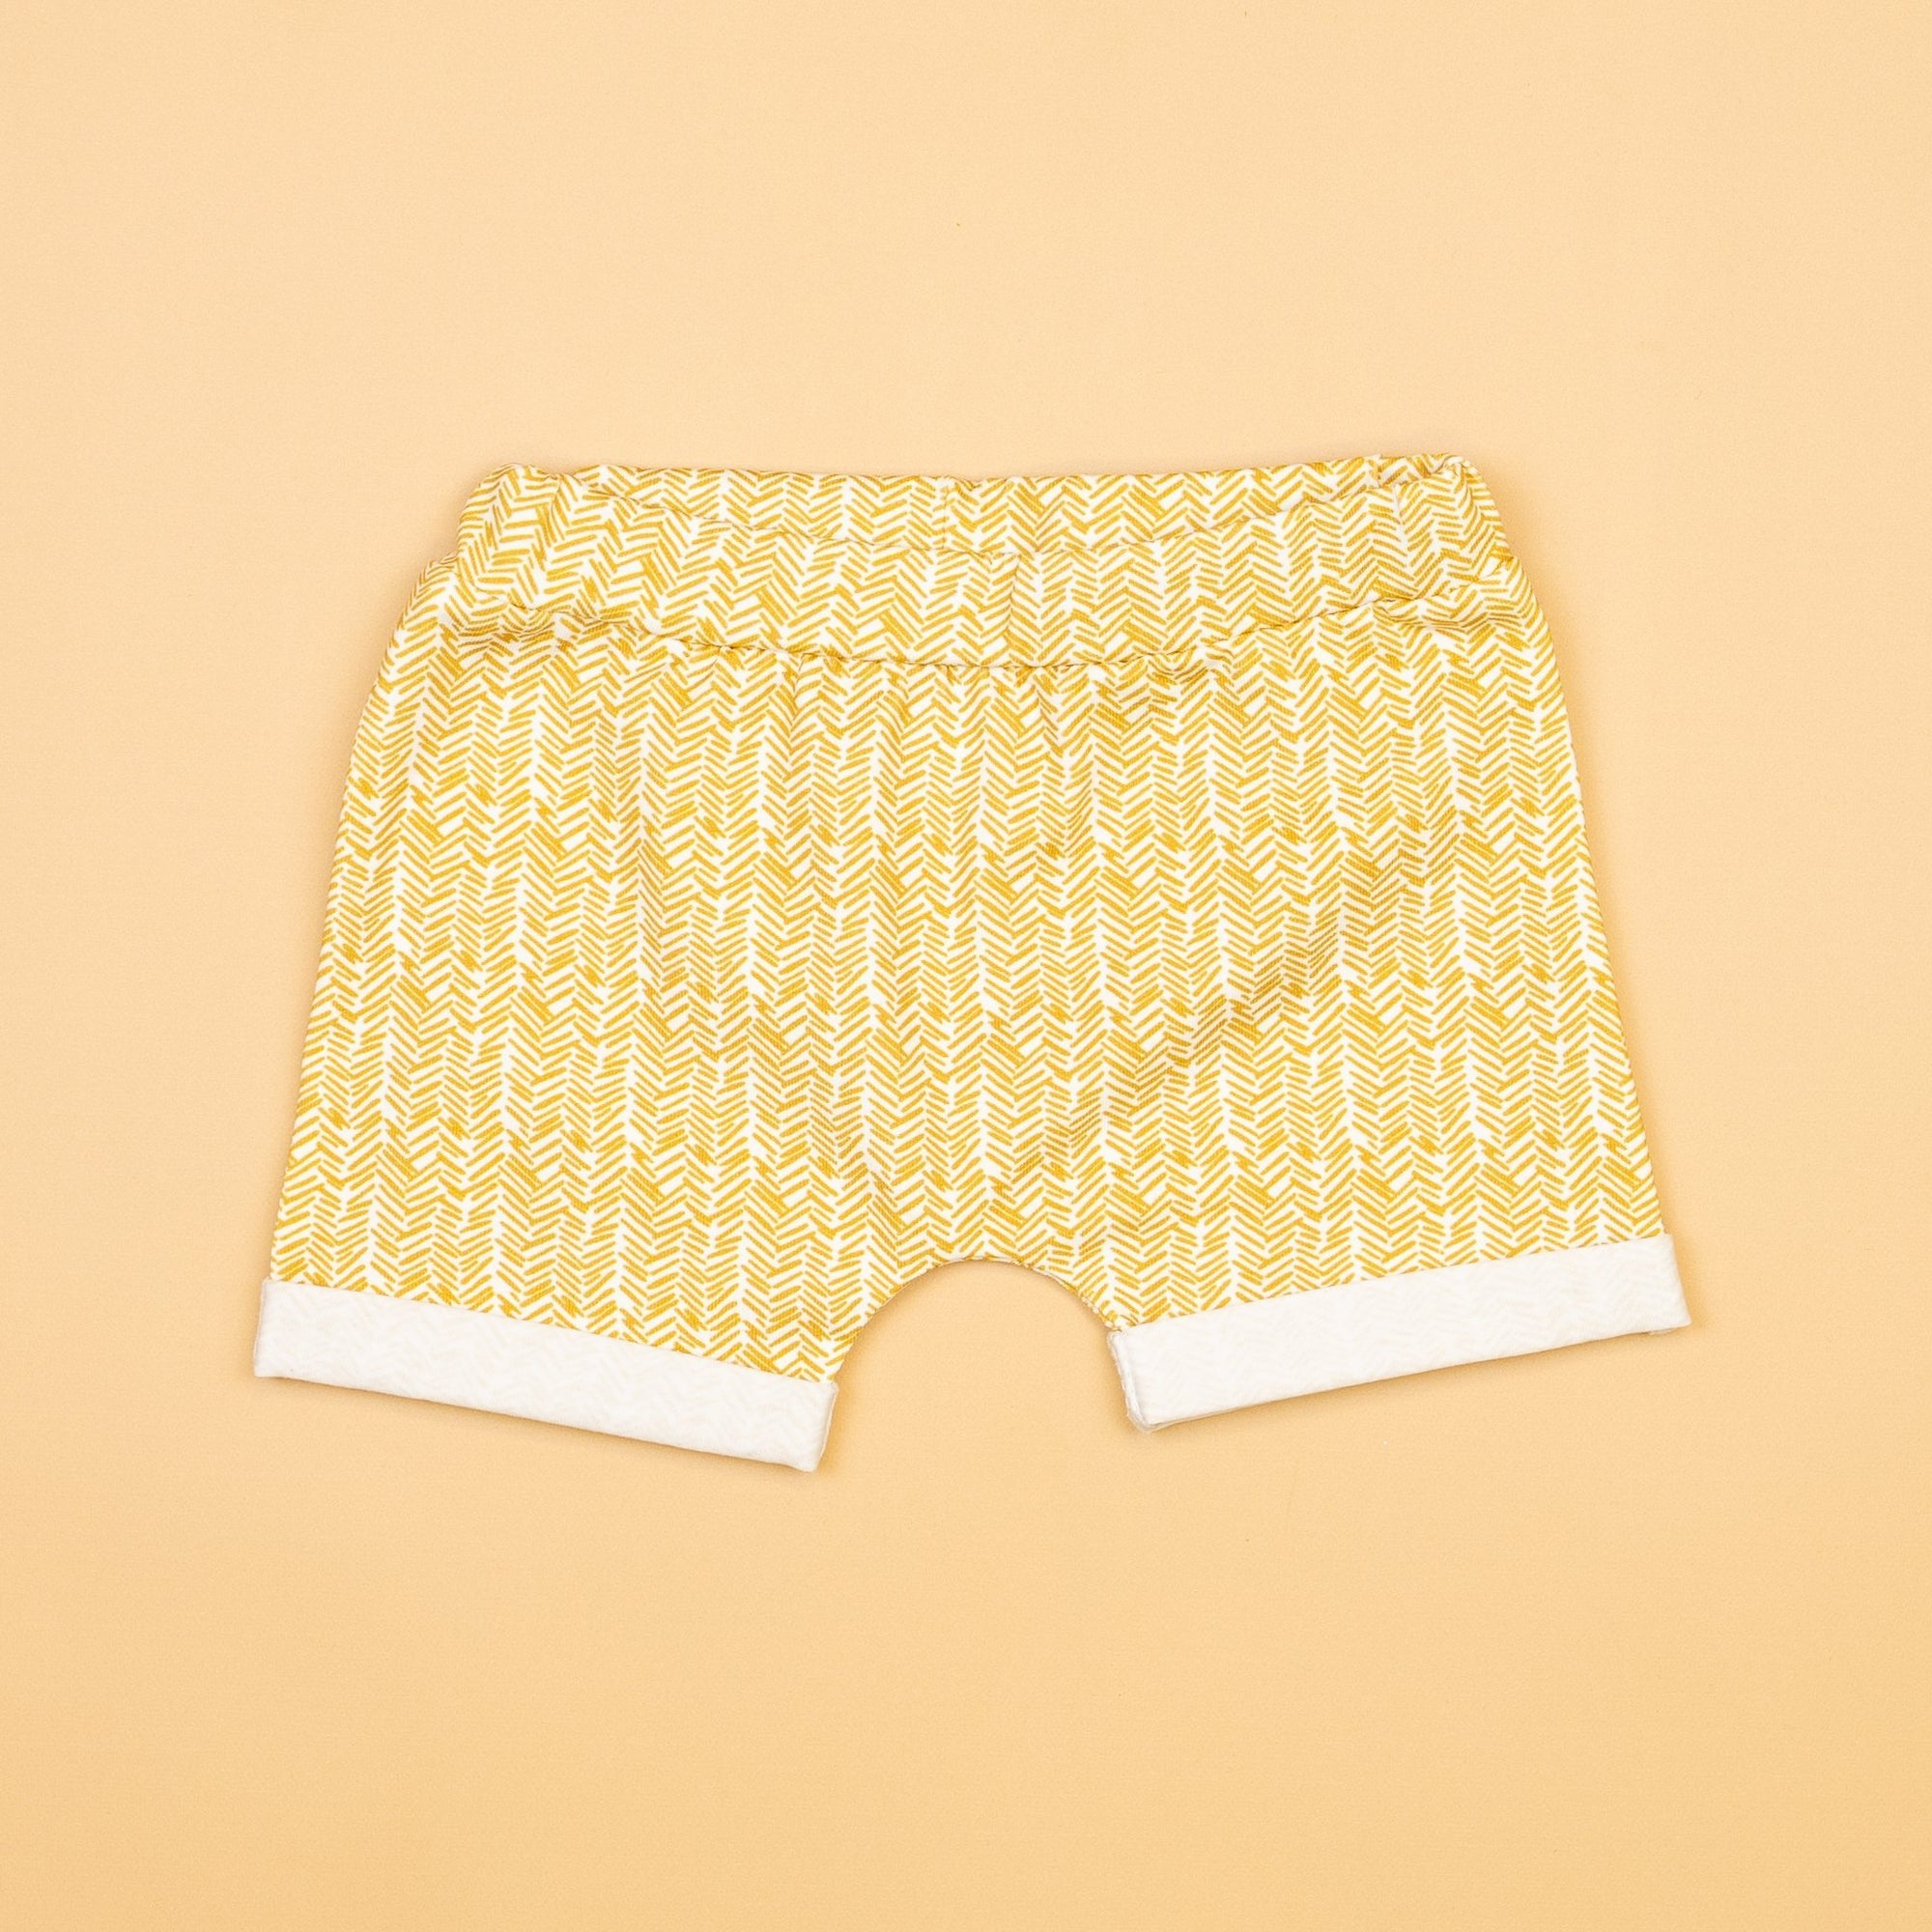 Cuddle Sleep Dream Nest Rolled Hem Shorts